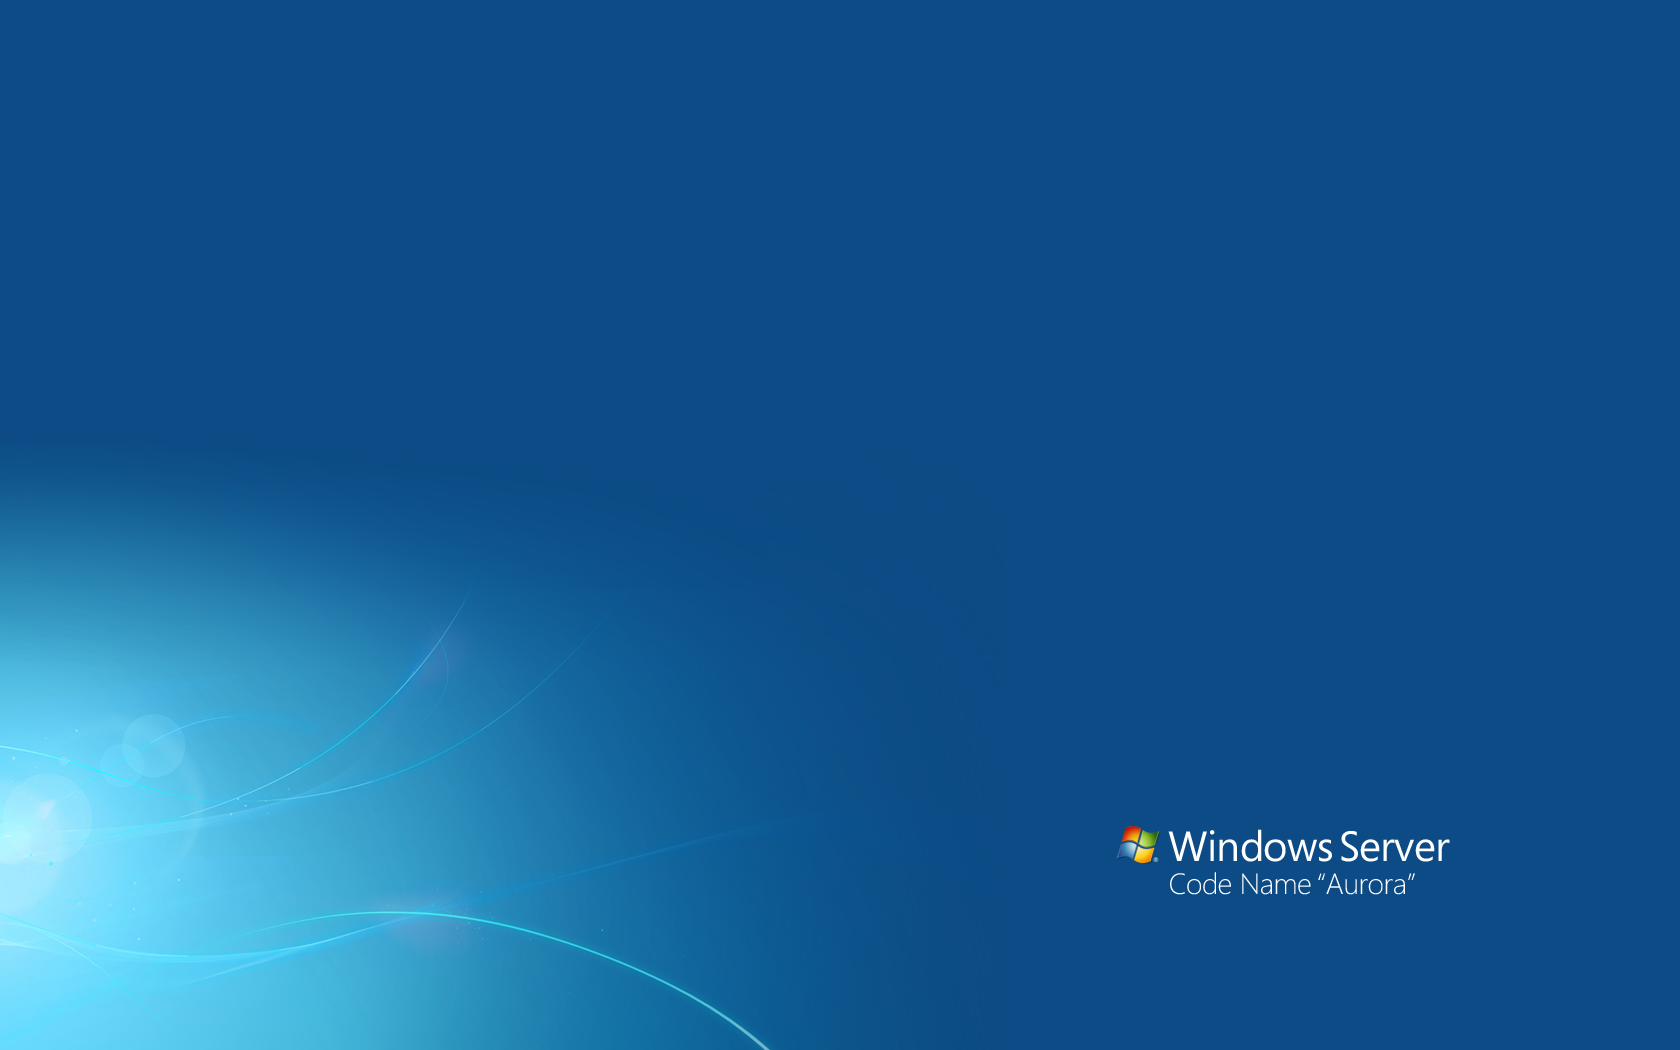 Windows Server wallpaper by